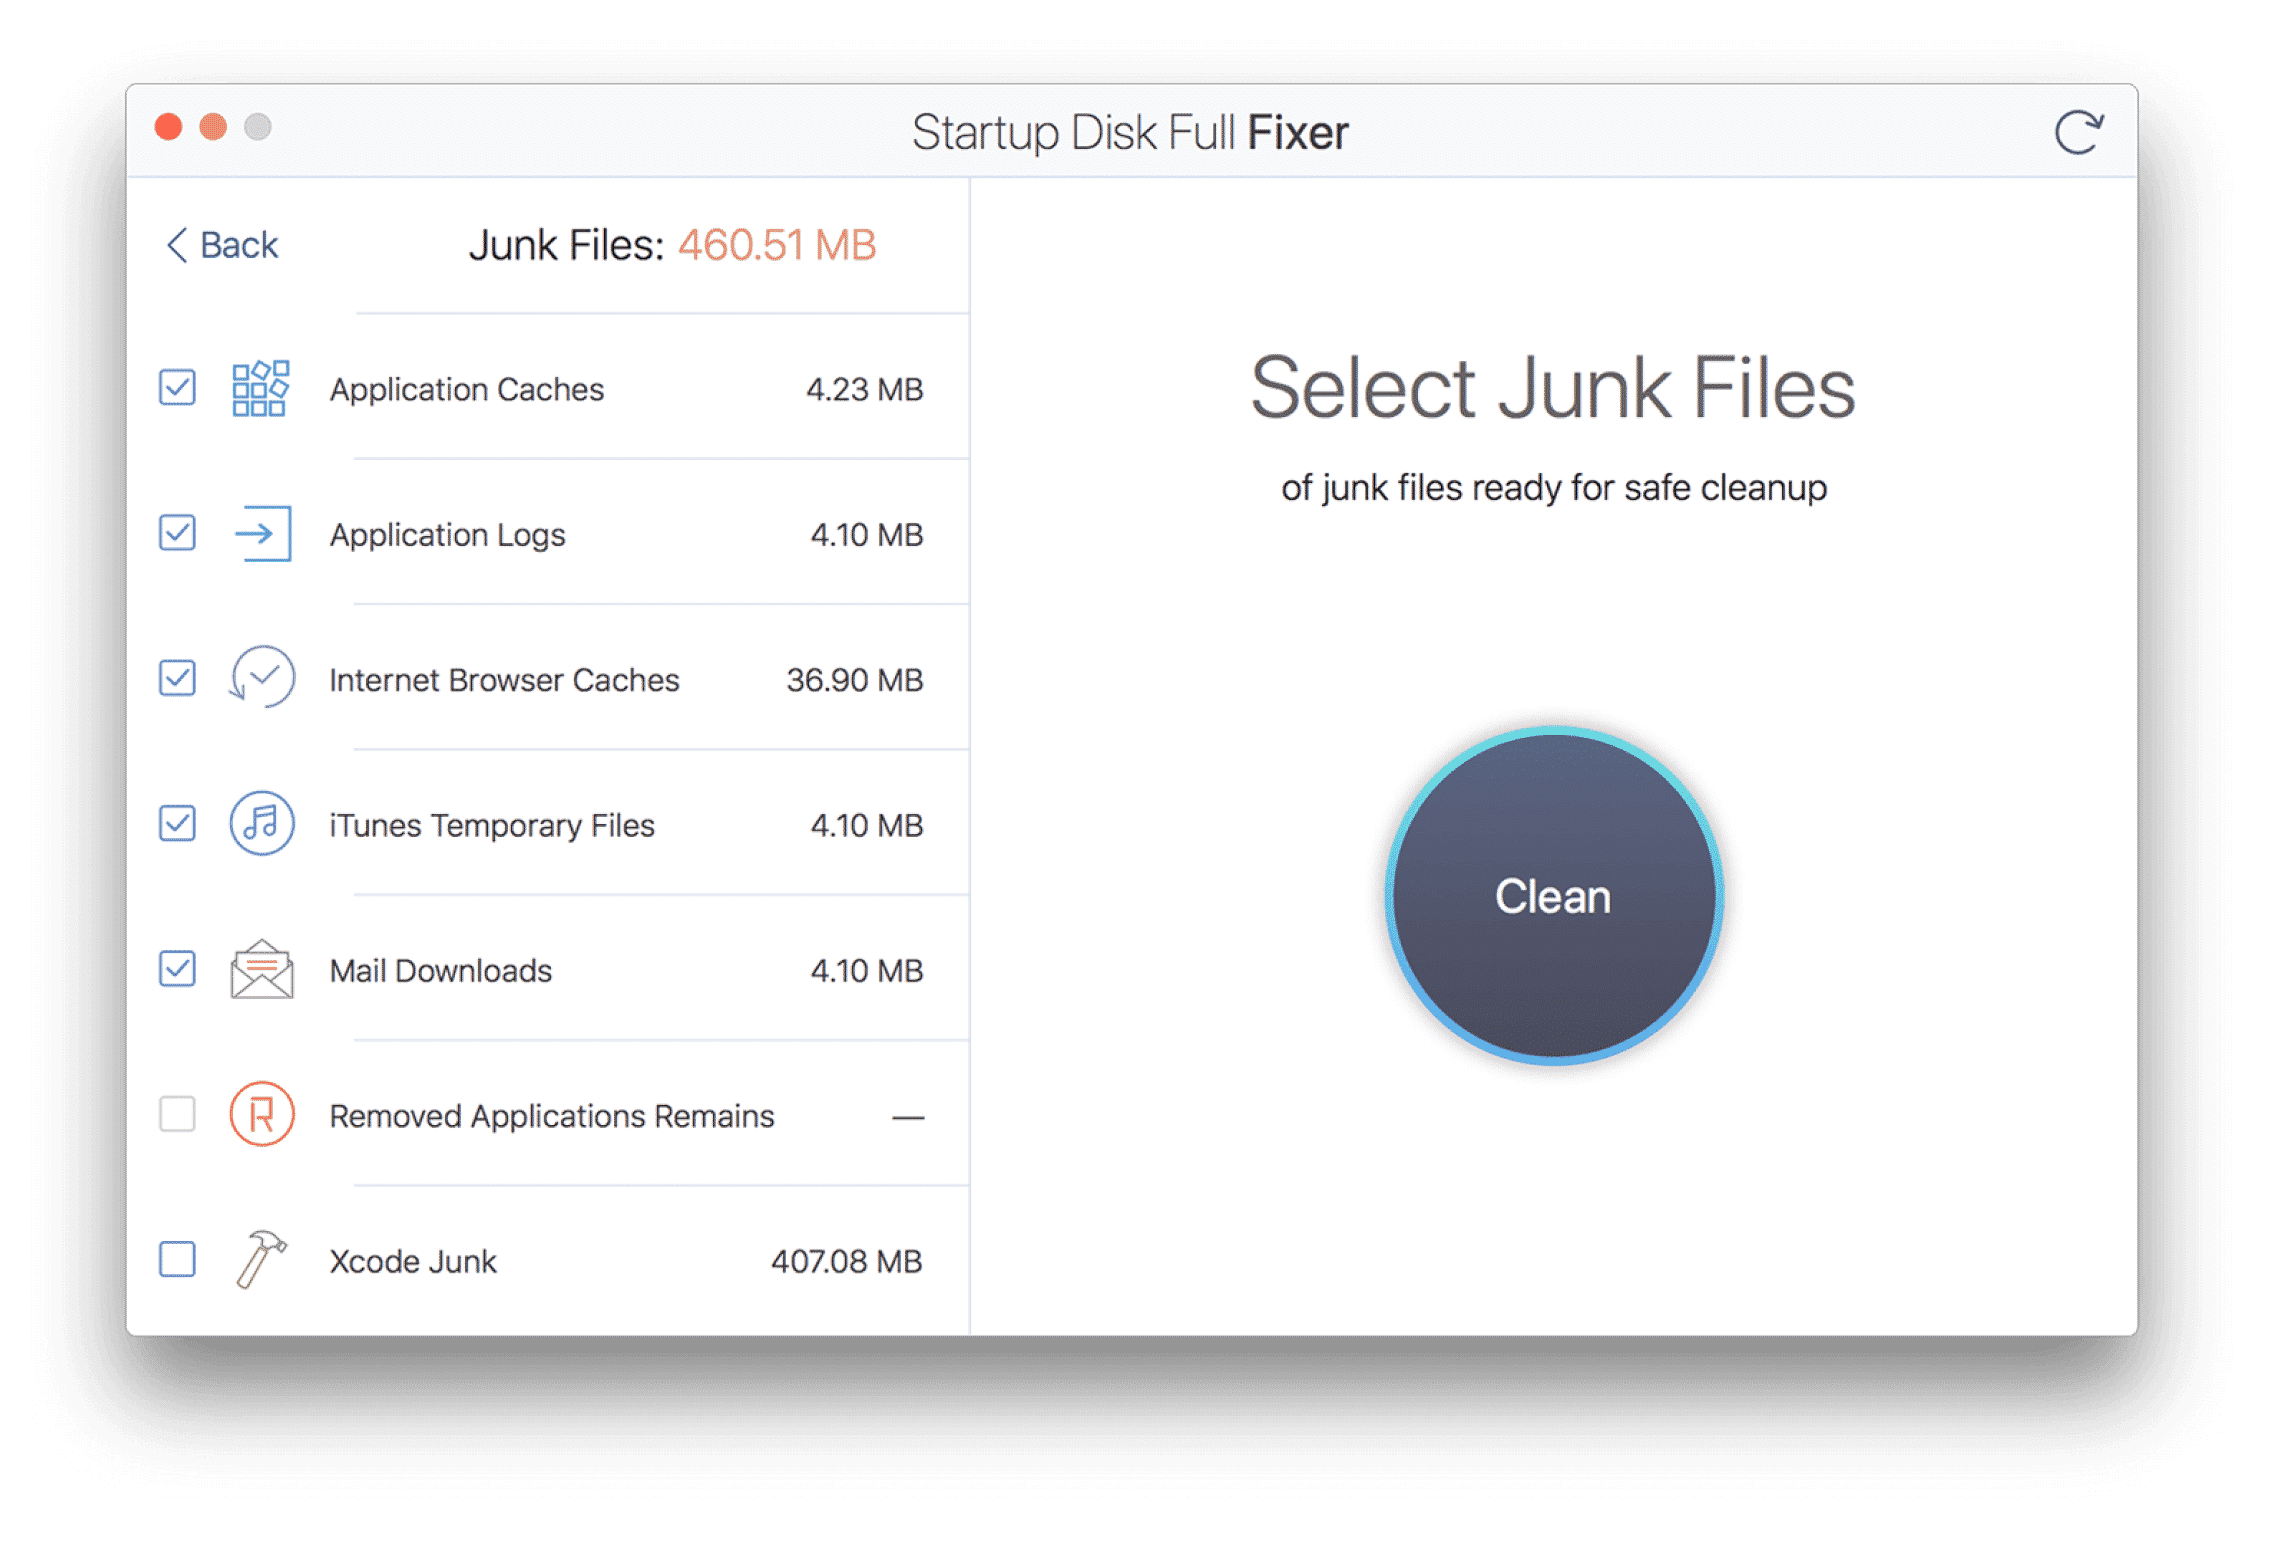 Startup Disk Full Fixer showing the Junk Files section